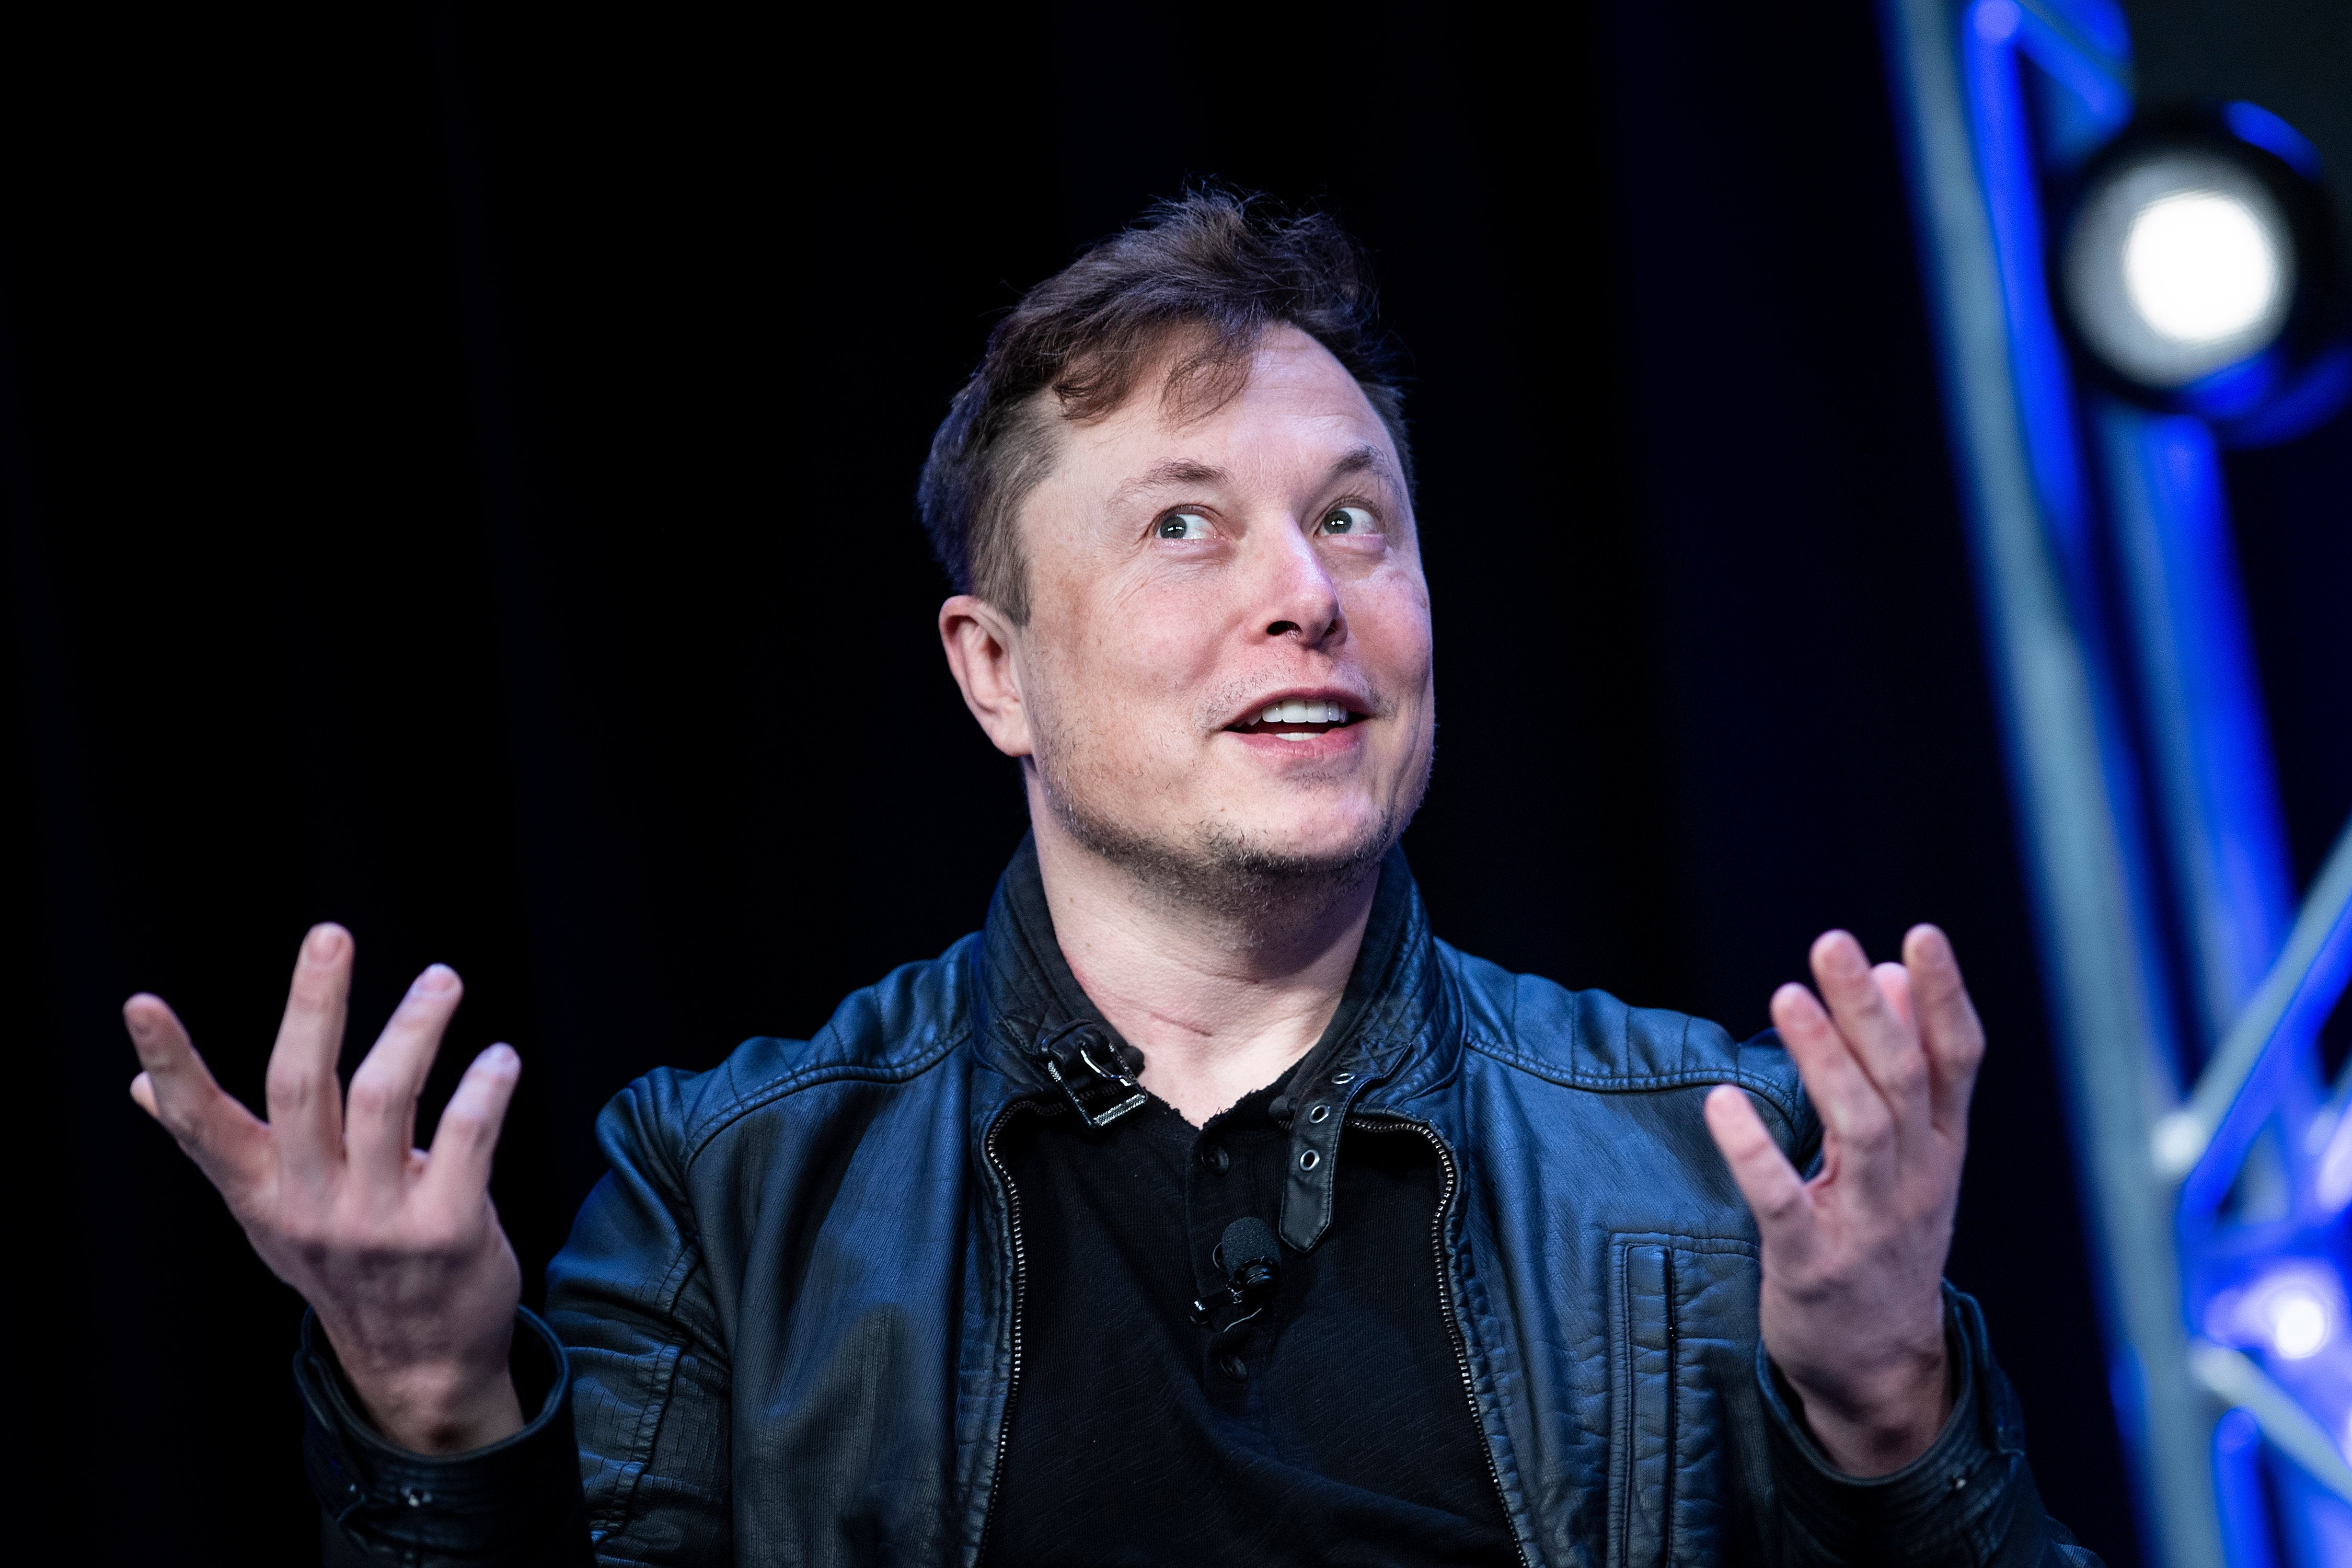 Elon Musk complains Discord chat service has gone 'Corpo' after it took down WallStreetBets